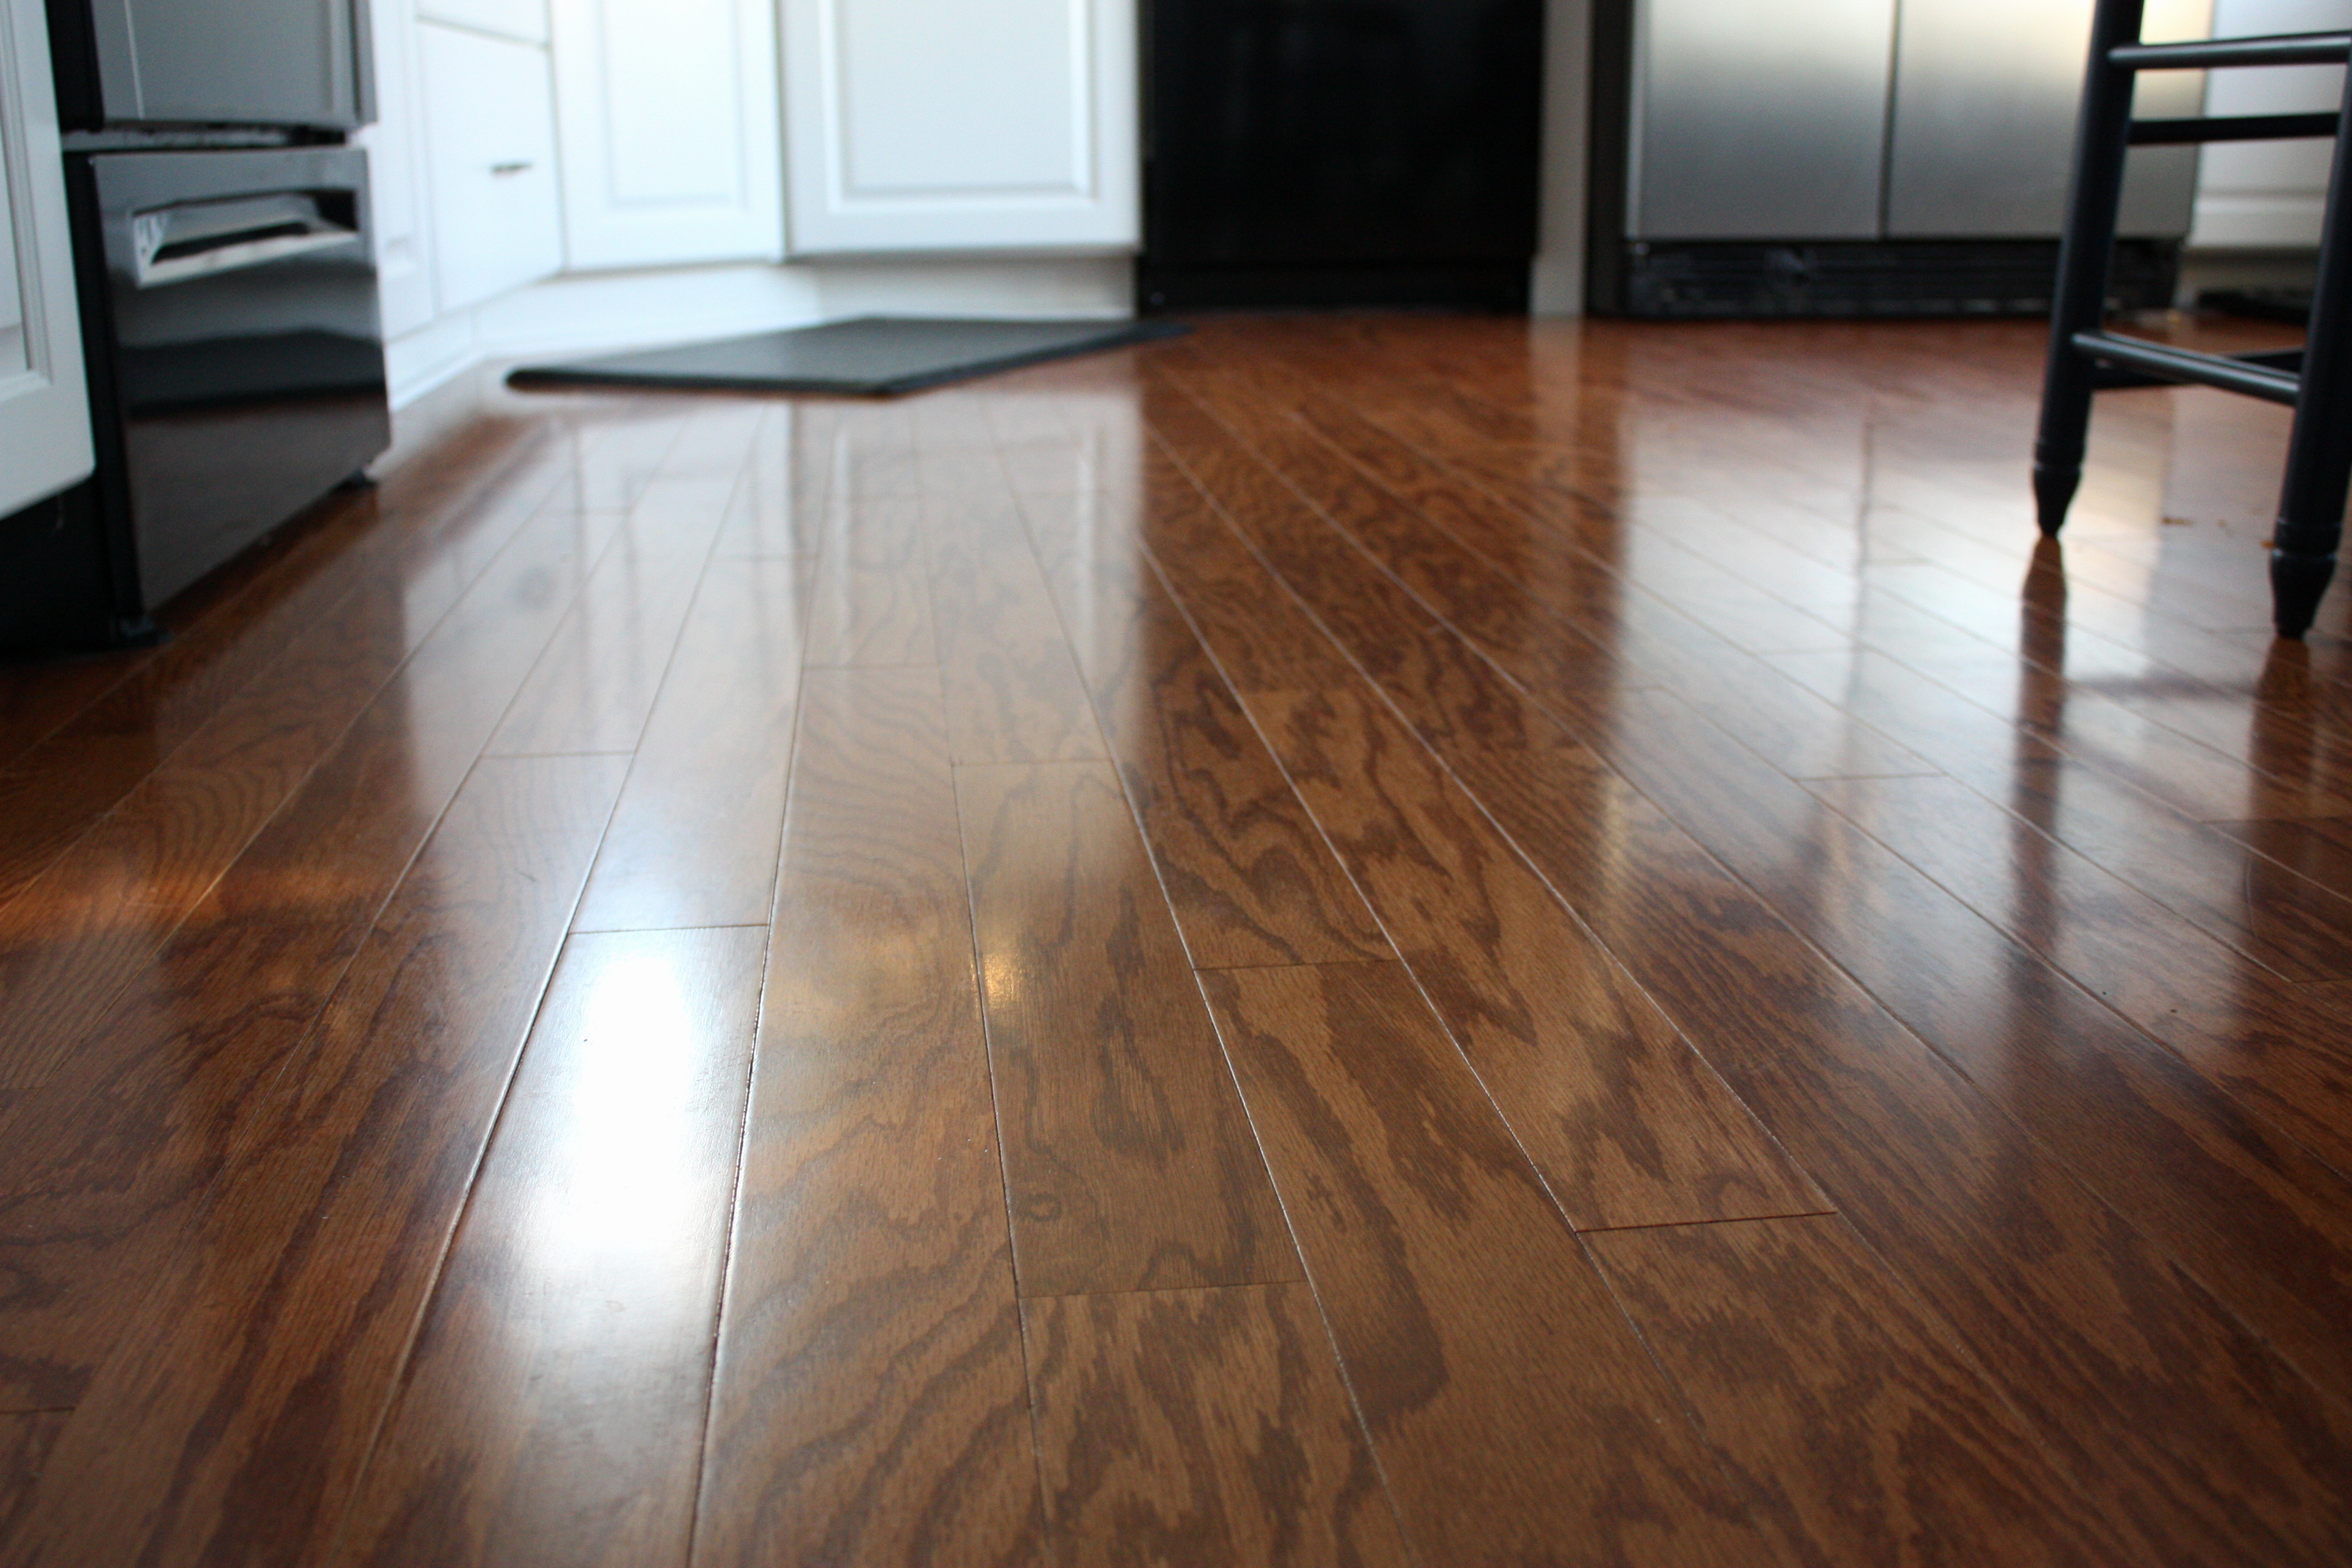 professional hardwood floor cleaning cost of the wood maker page 6 wood wallpaper in floor floorod cleaning hardwood carpet lake forest il rare image ideas of wood floor steam cleaner